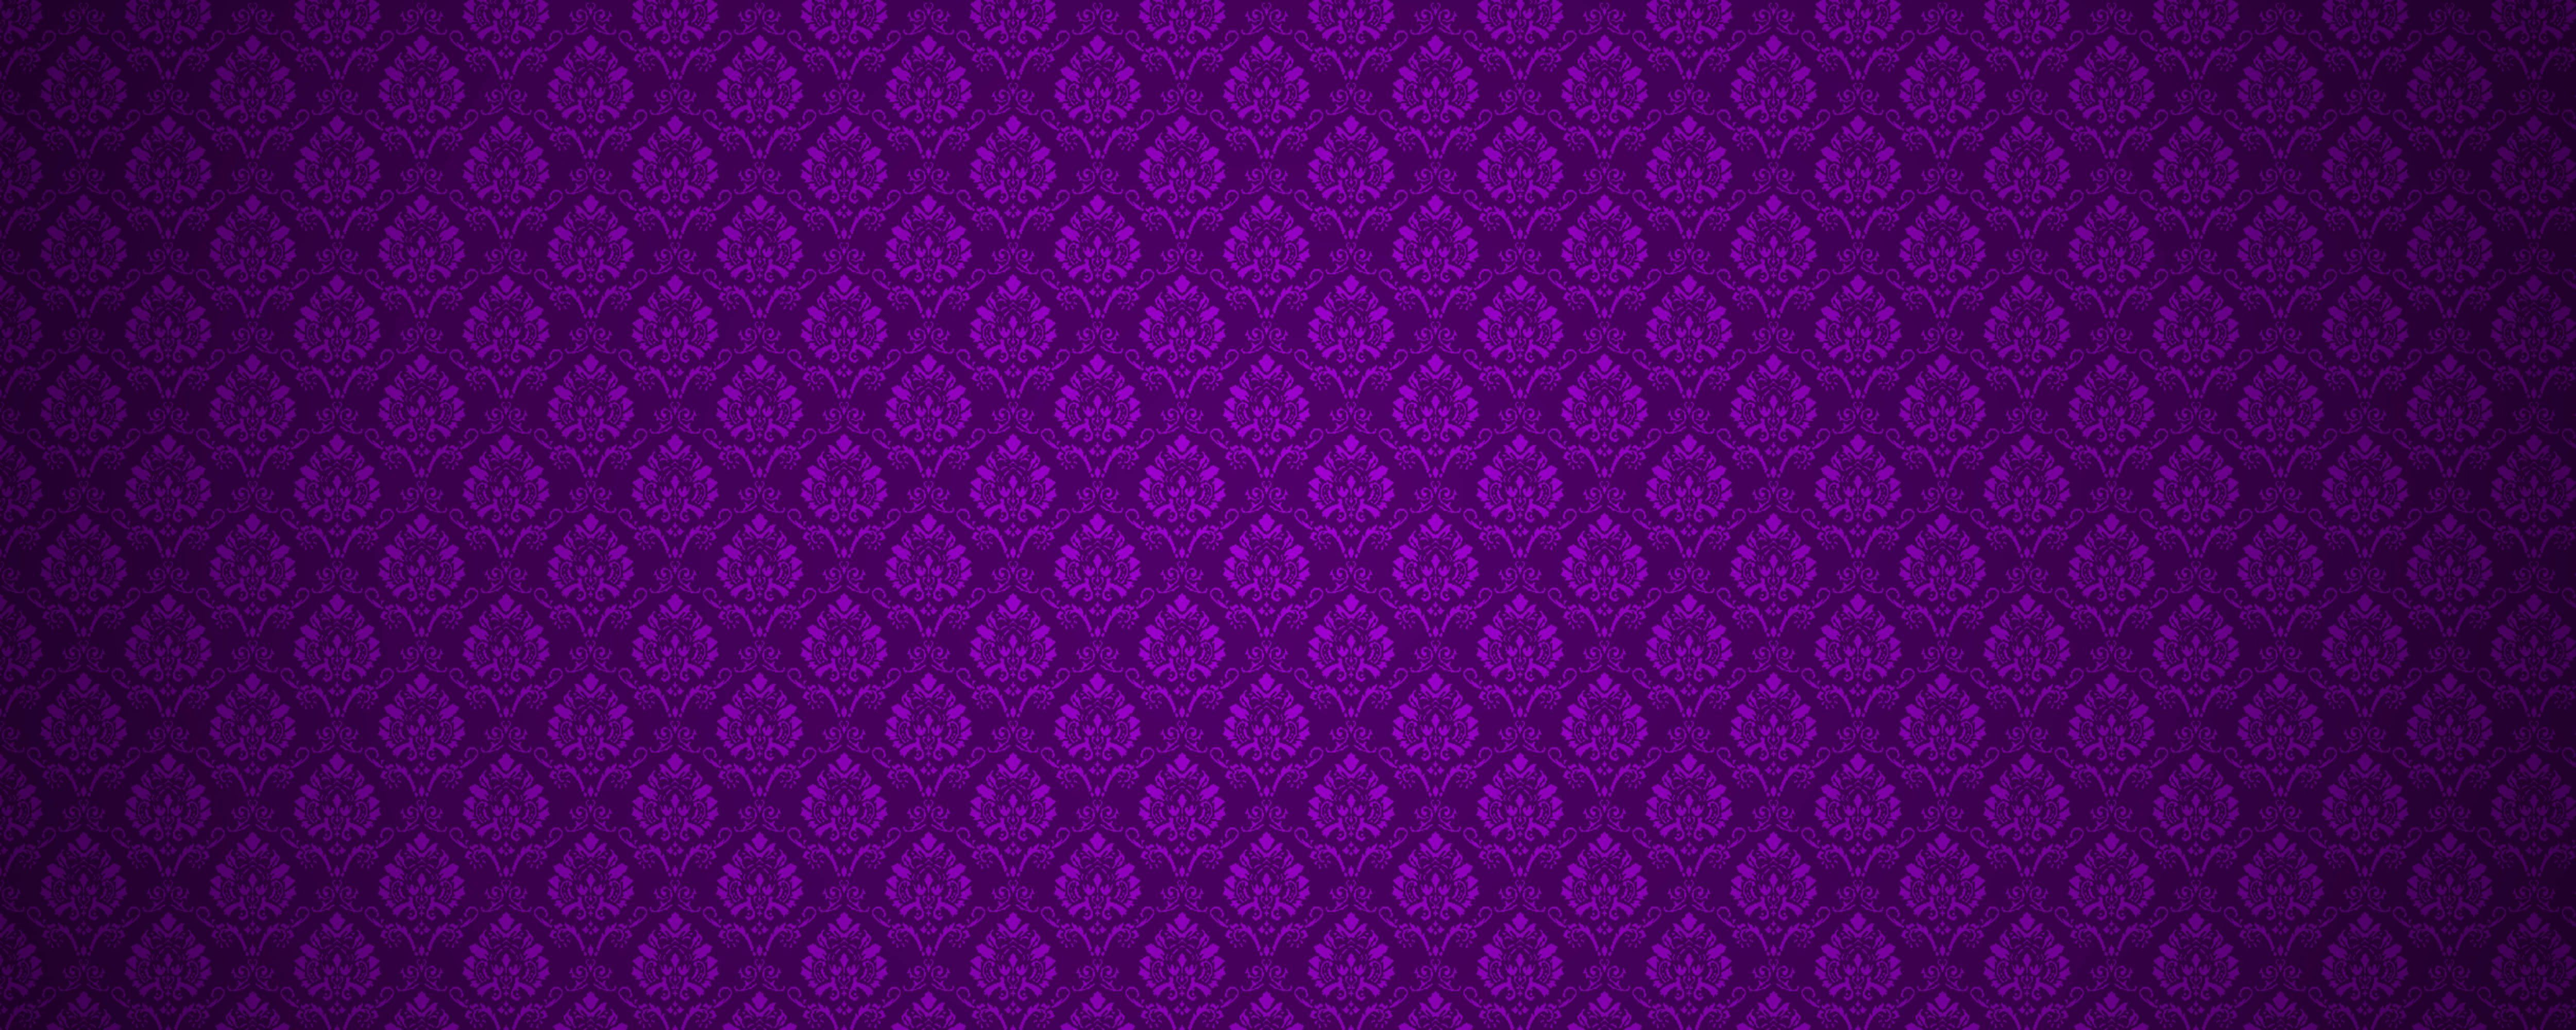 purple-background-wallpaper